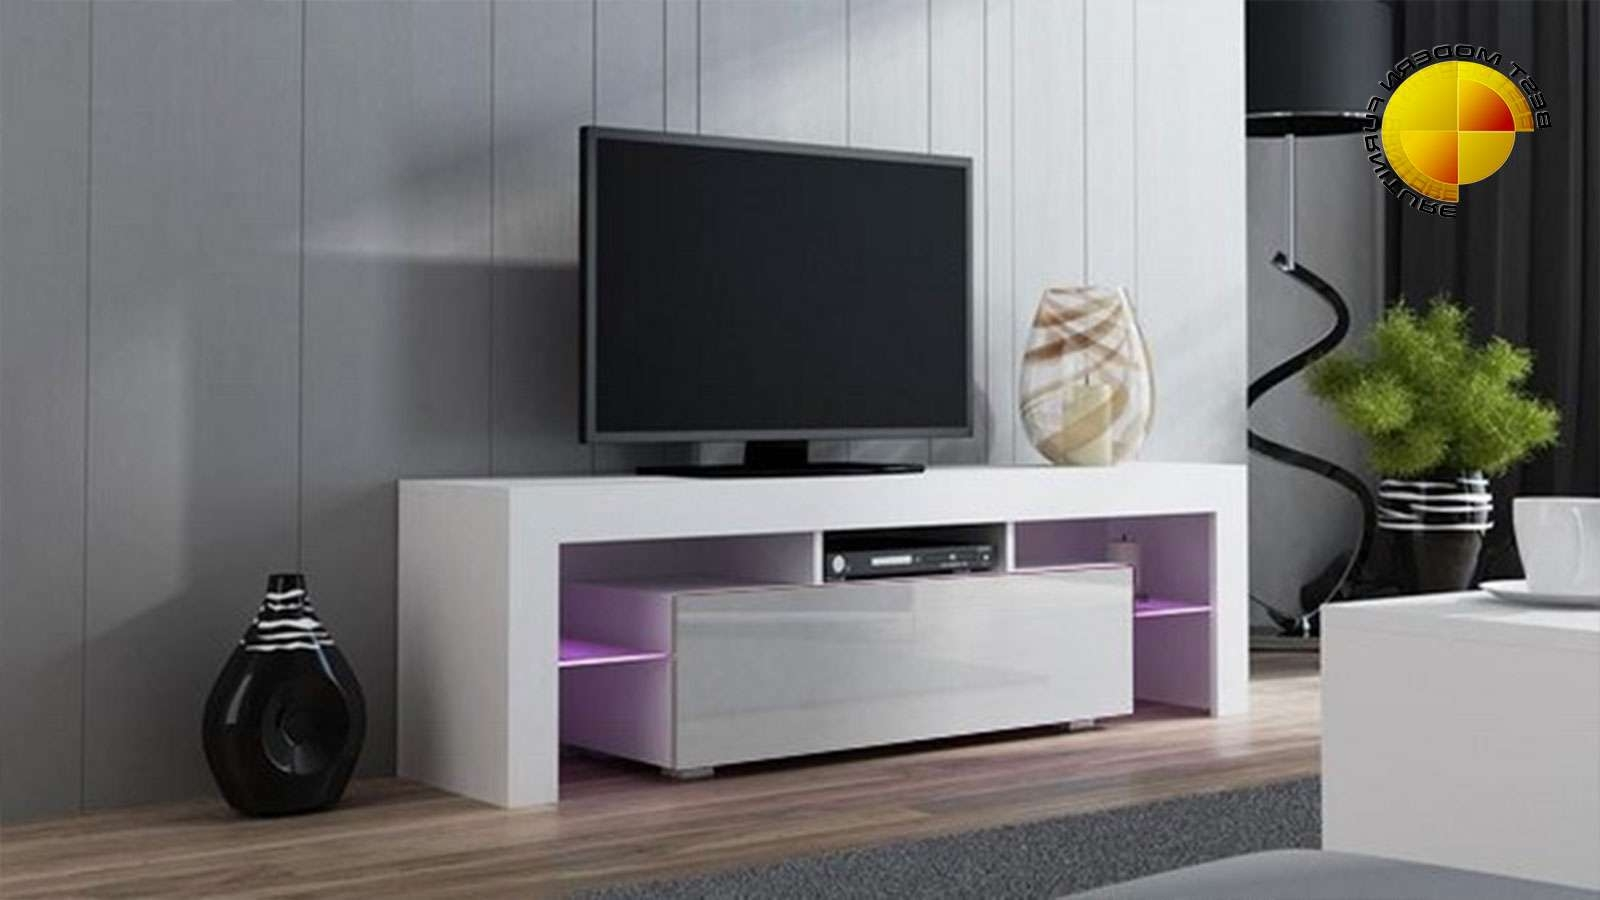 Modern Tv Stand 160cm High Gloss Cabinet Rgb Led Lights White Unit Within Tv Cabinets Gloss (View 8 of 20)